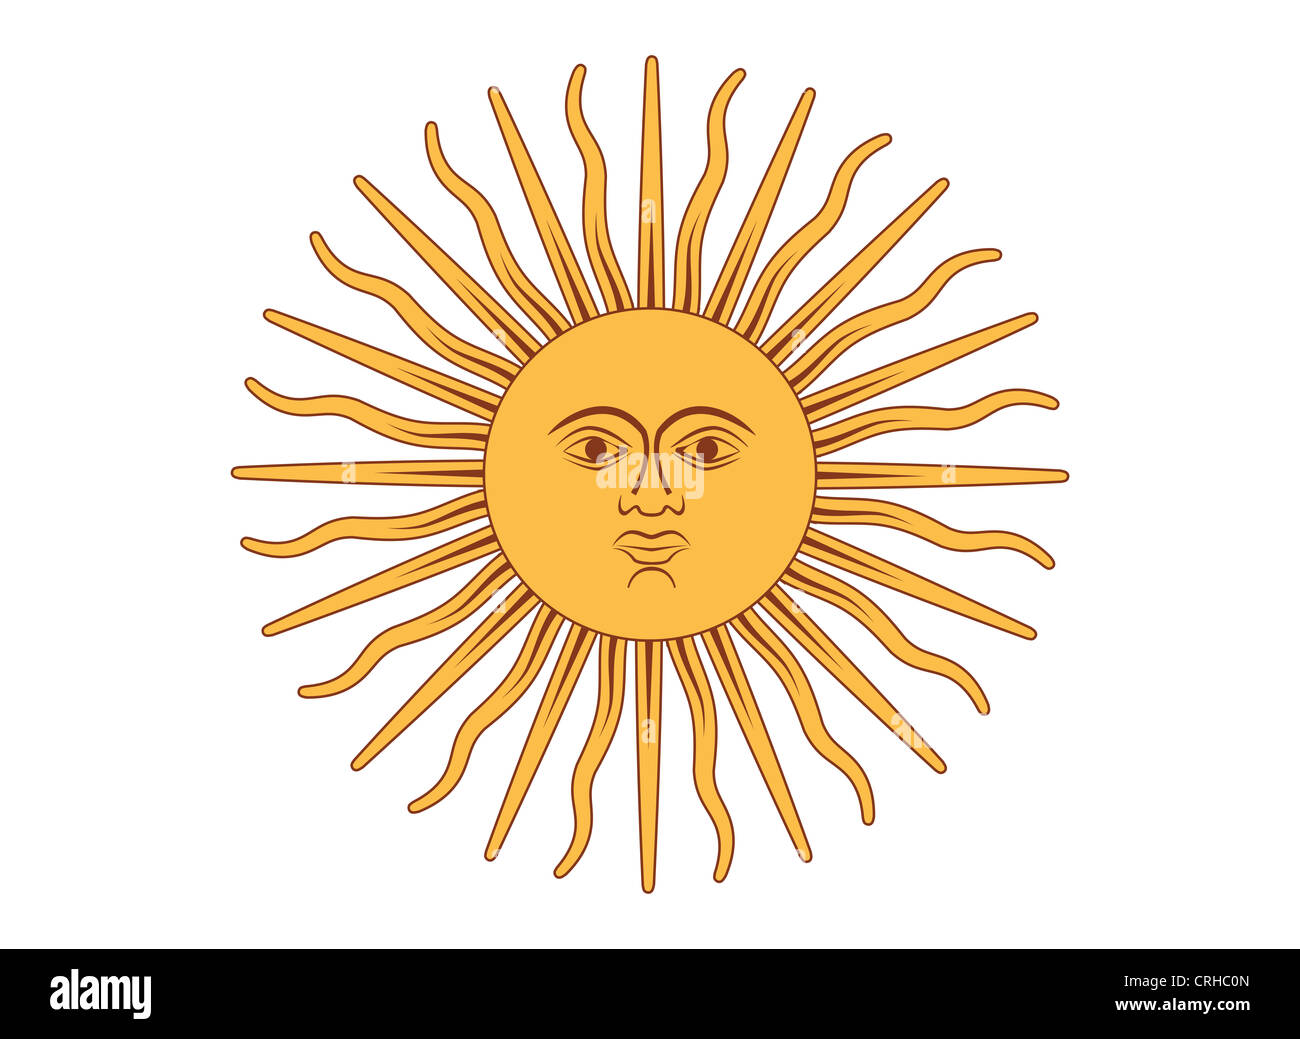 Inca Sun God Stock Photos Inca Sun God Stock Images Alamy